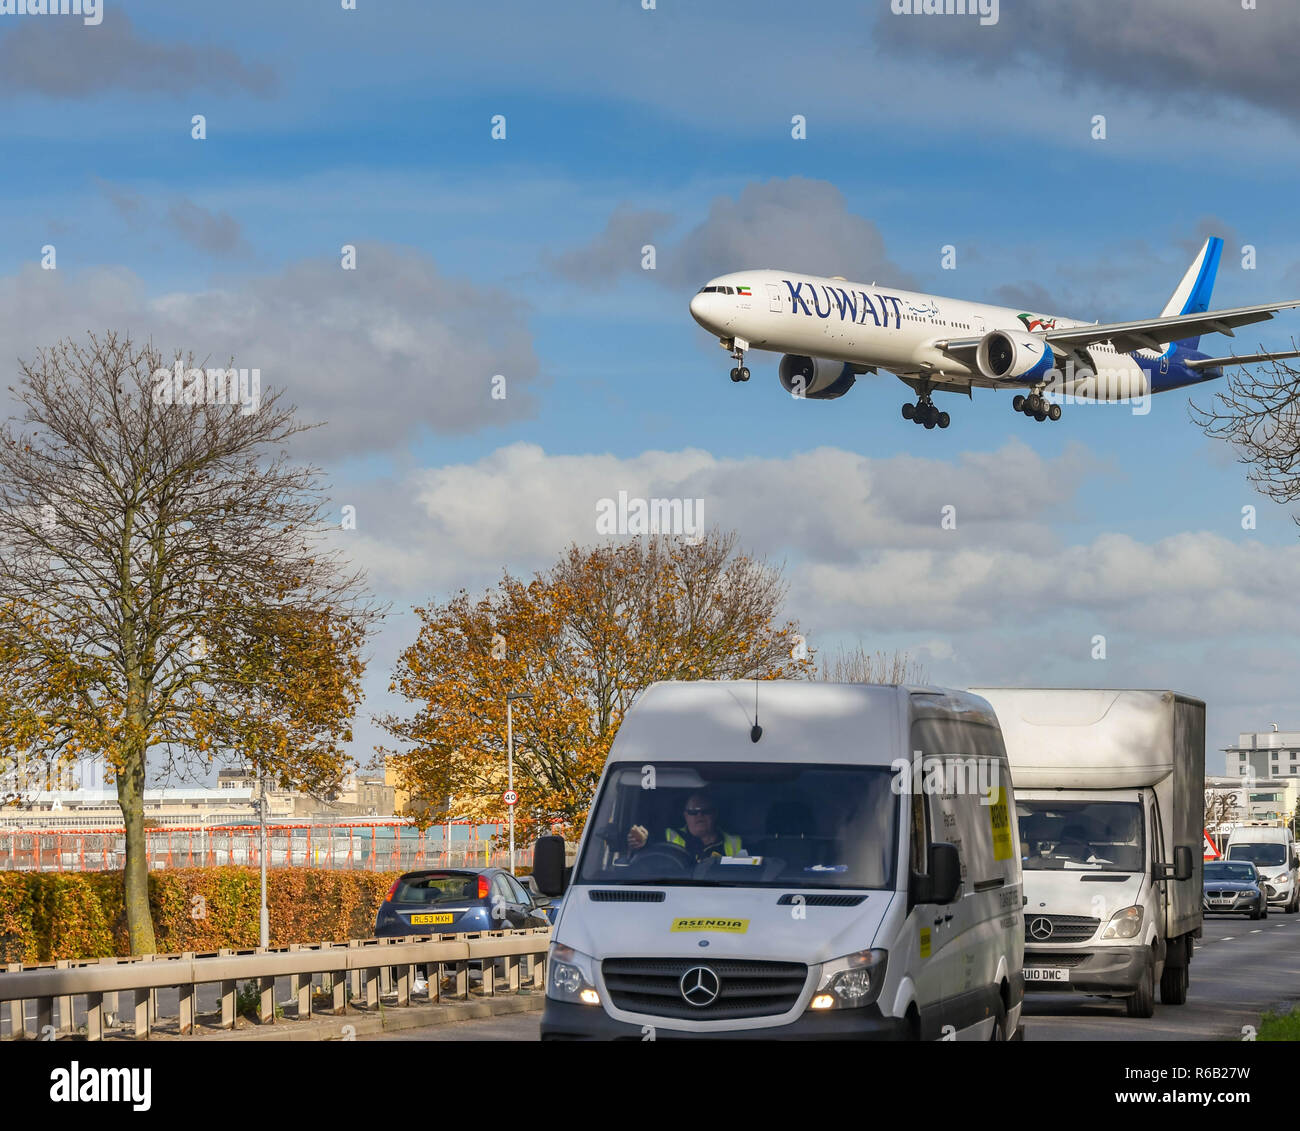 LONDON, ENGLAND - NOVEMBER 2018: Commercial vehicles on the A30 road at London Heathrow Airport with a large passenger jet passing overhead.Stock Photo